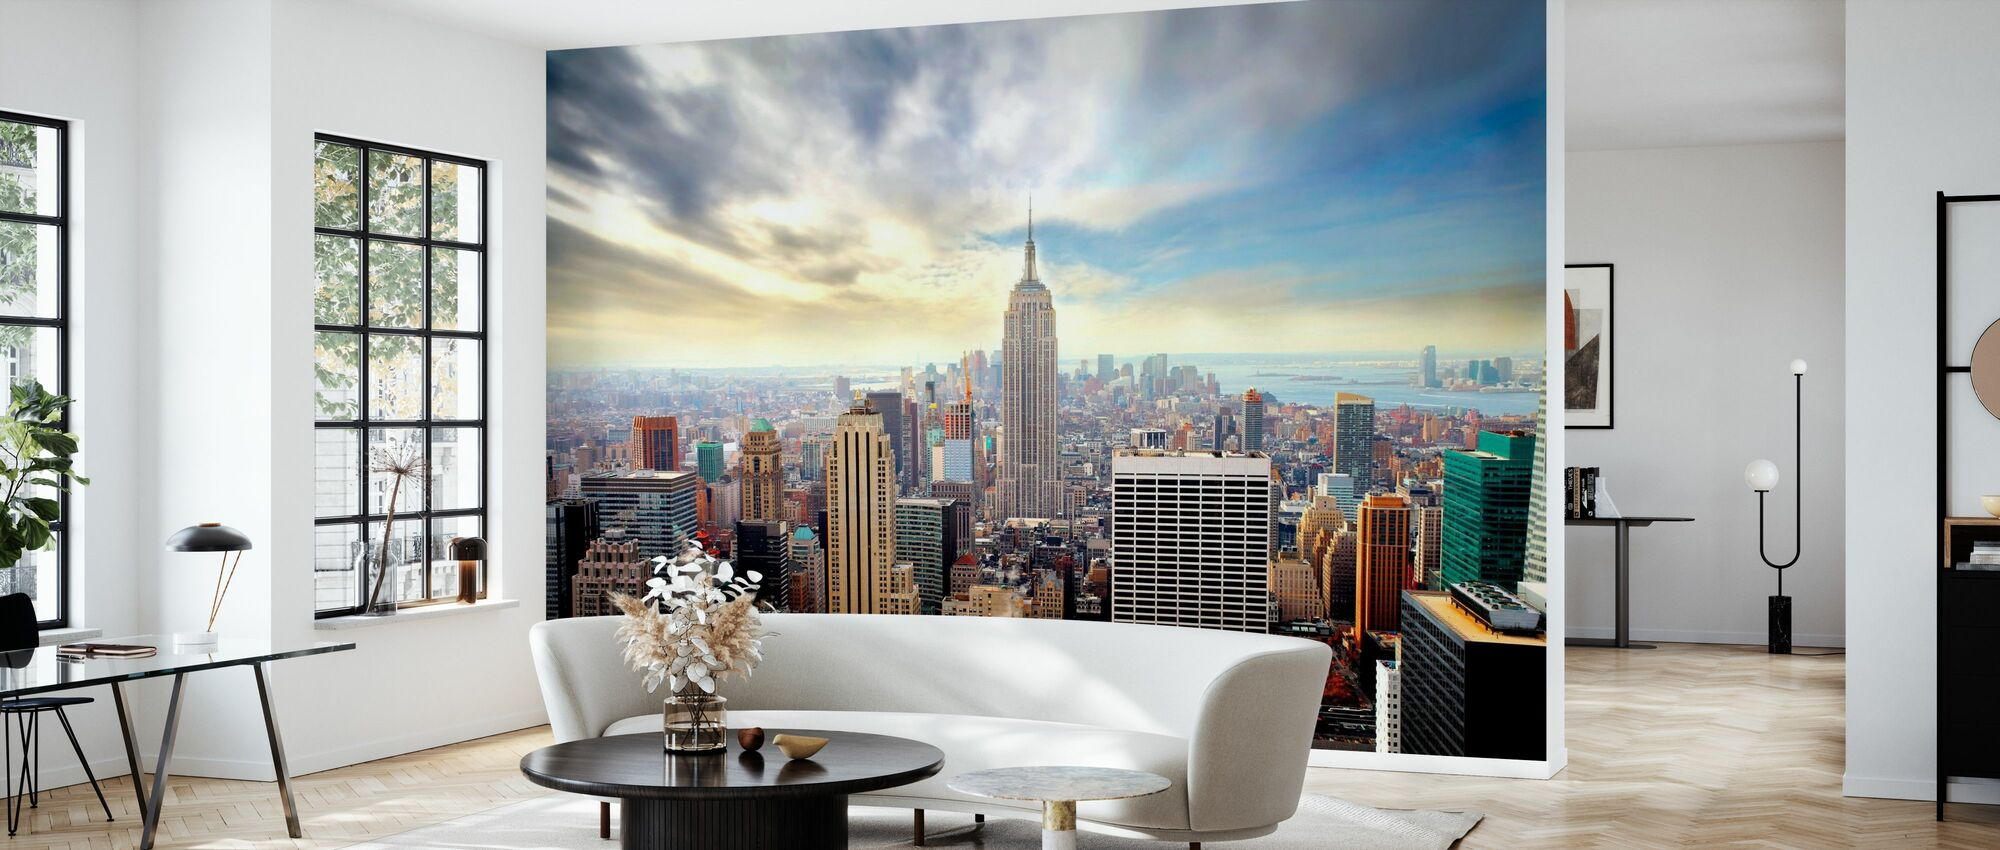 Betoverend New York - Behang - Woonkamer